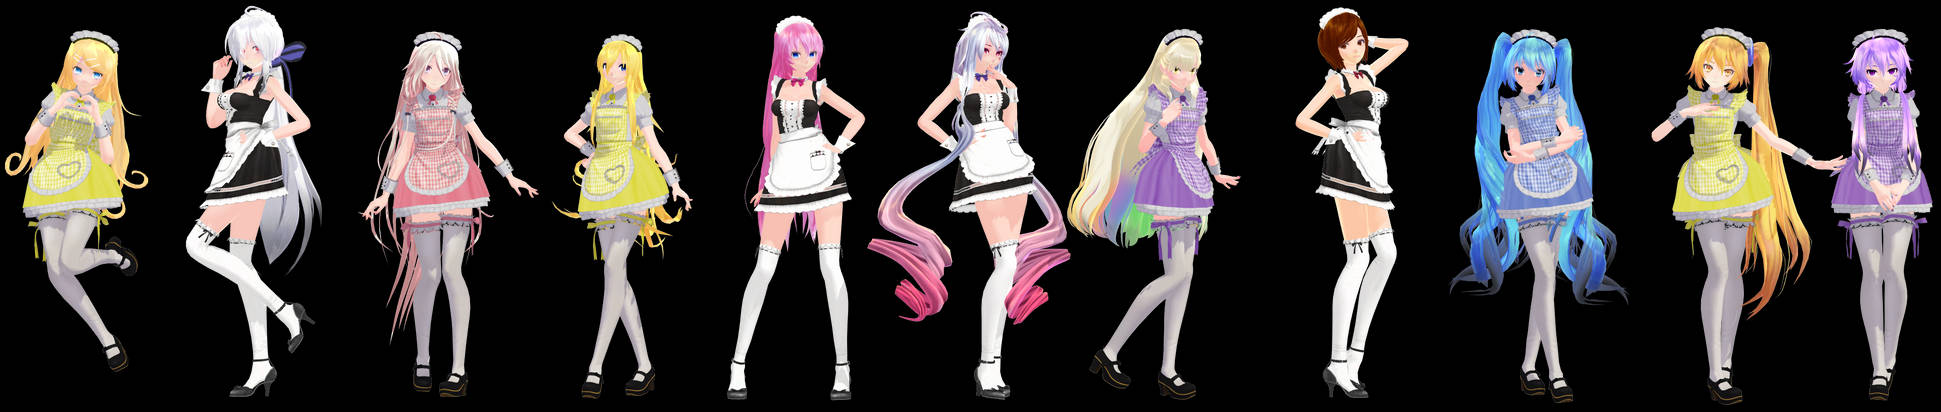 MMD Model Pack: TDA Maid Models